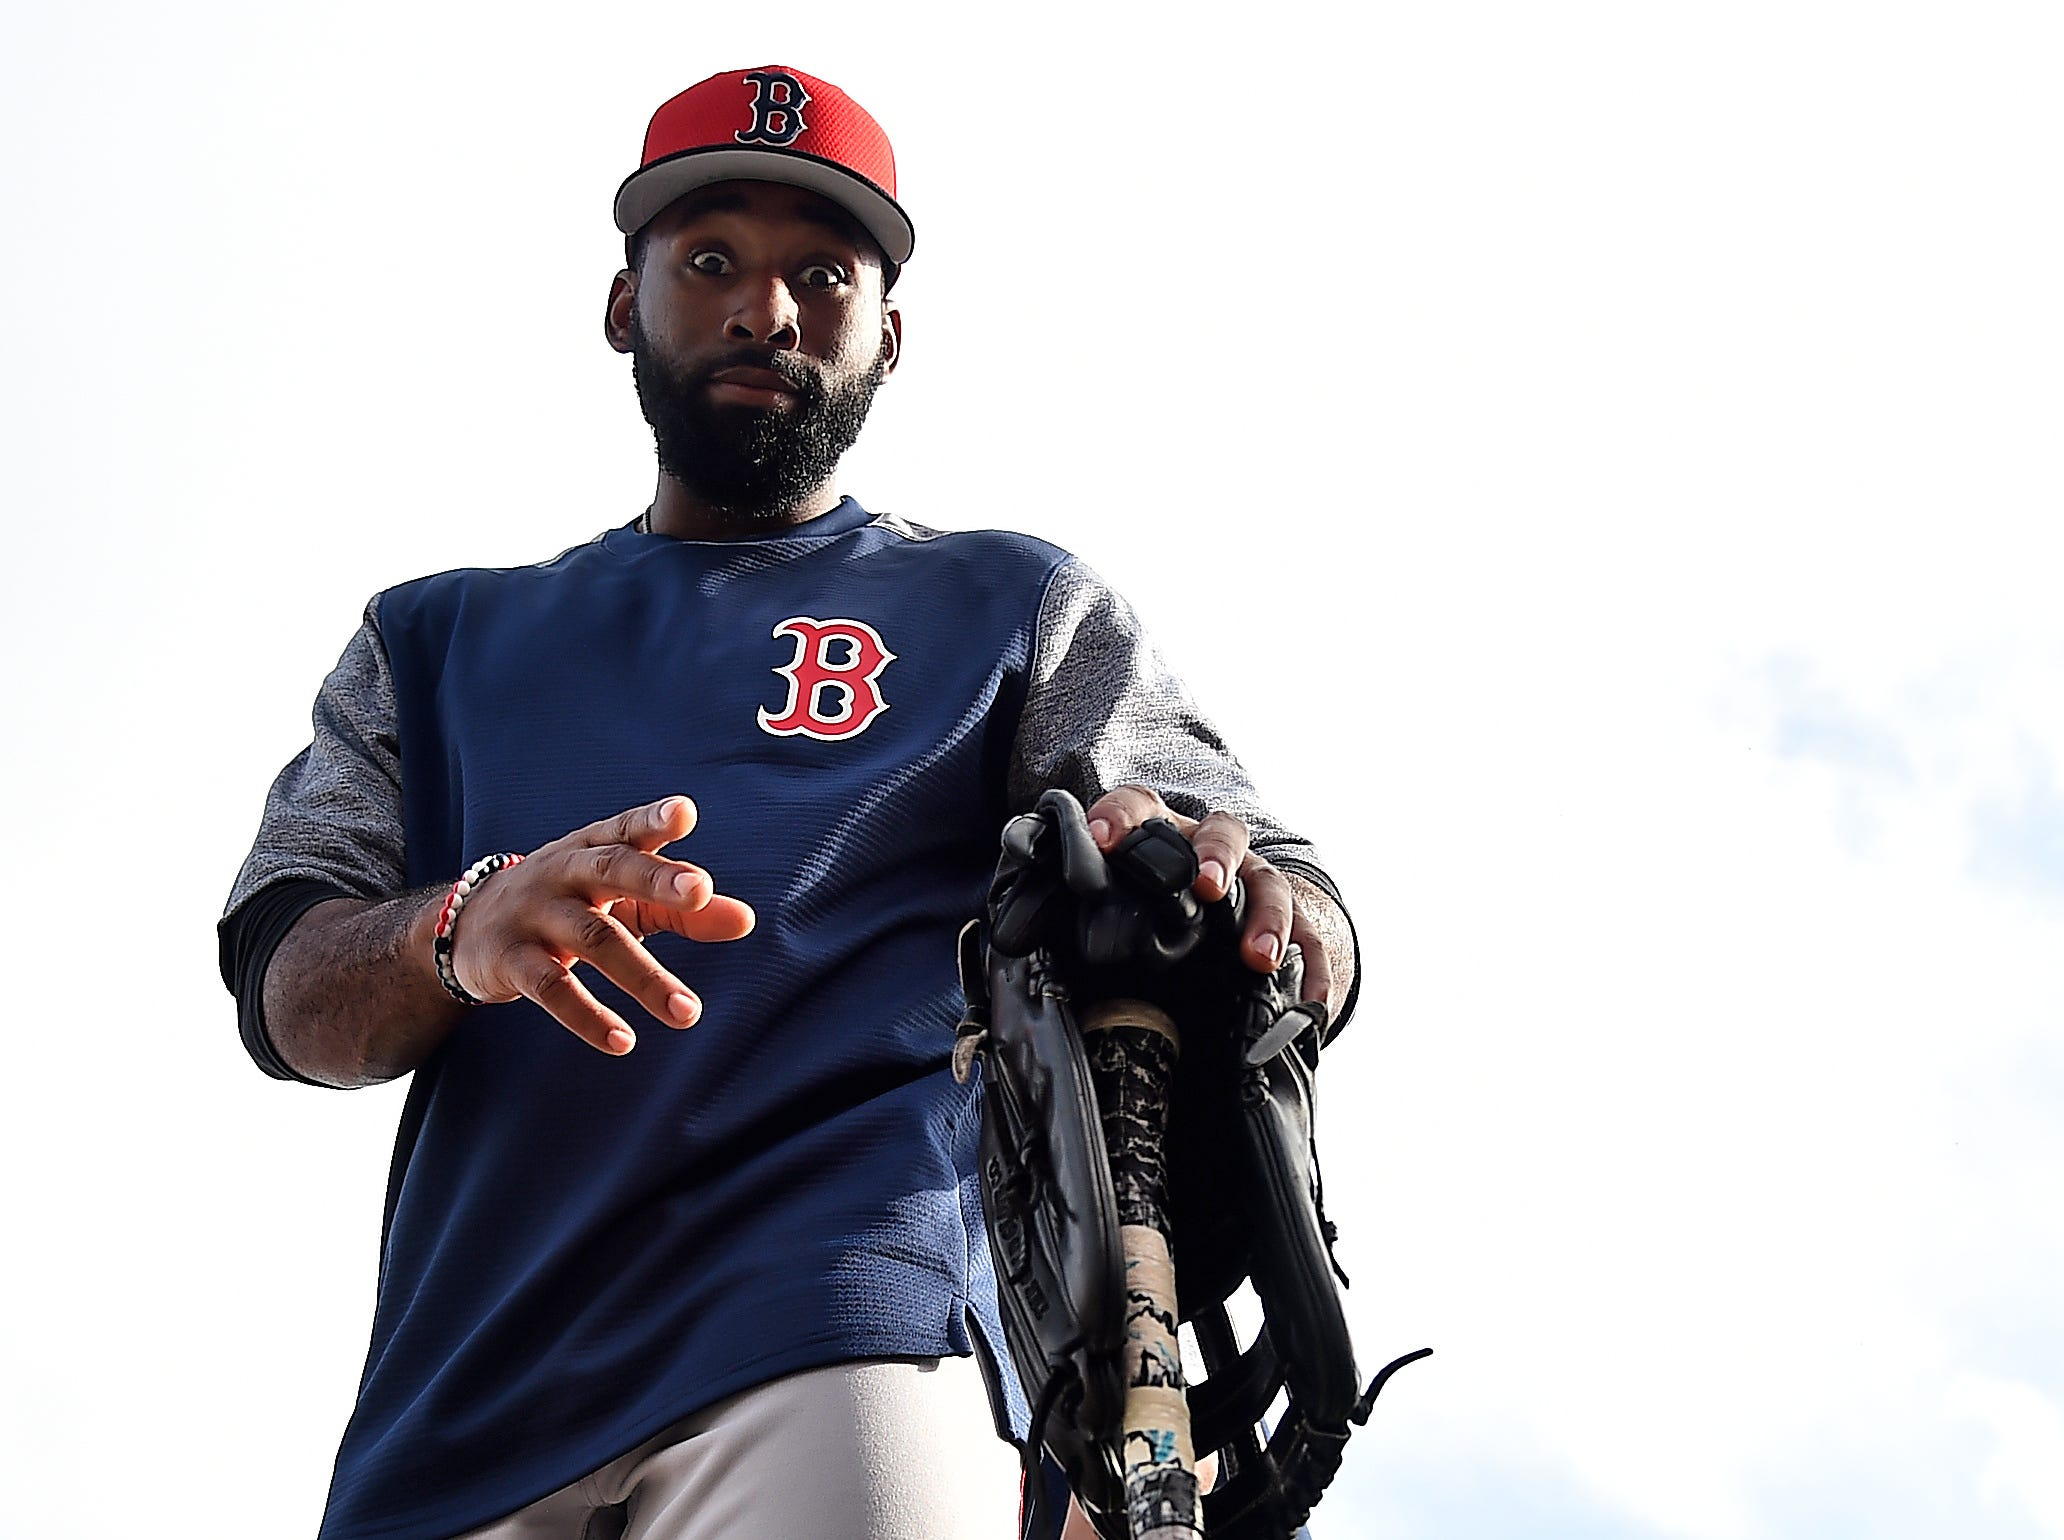 Feb. 18: Red Sox center fielder Jackie Bradley Jr. during a workout at JetBlue Park.